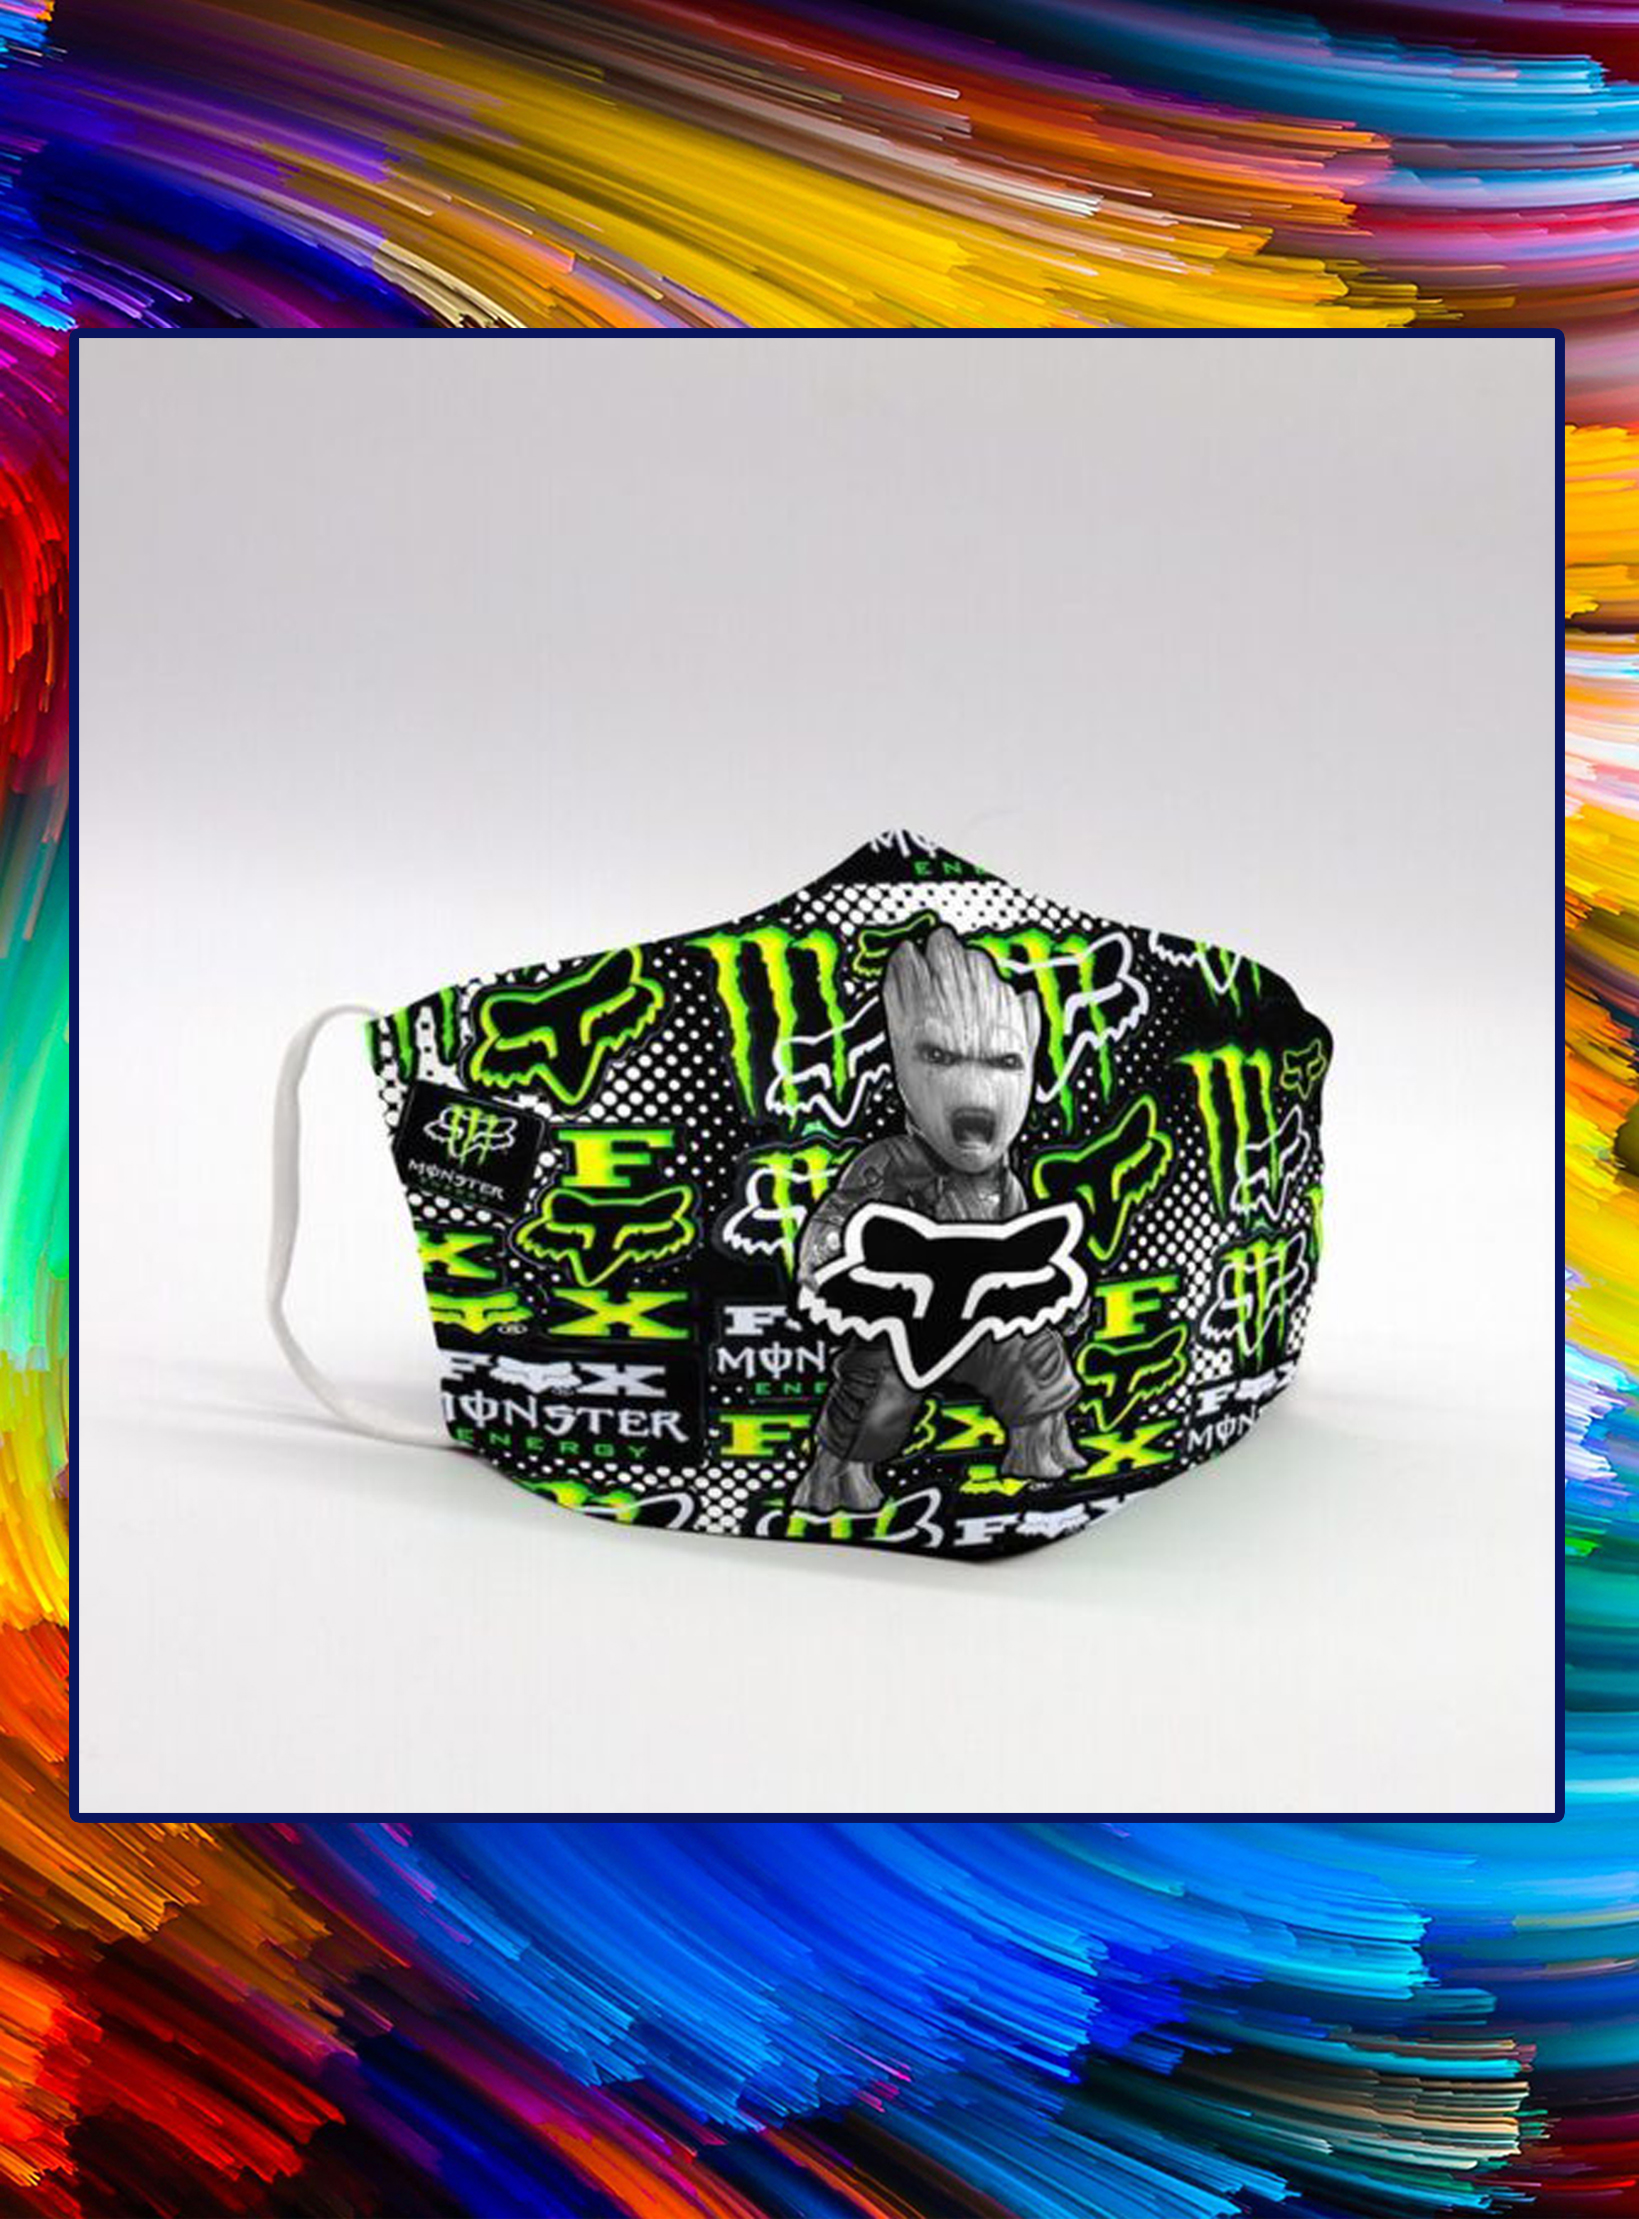 Groot fox racing monster energy face mask - pic 1Groot fox racing monster energy face mask - pic 1